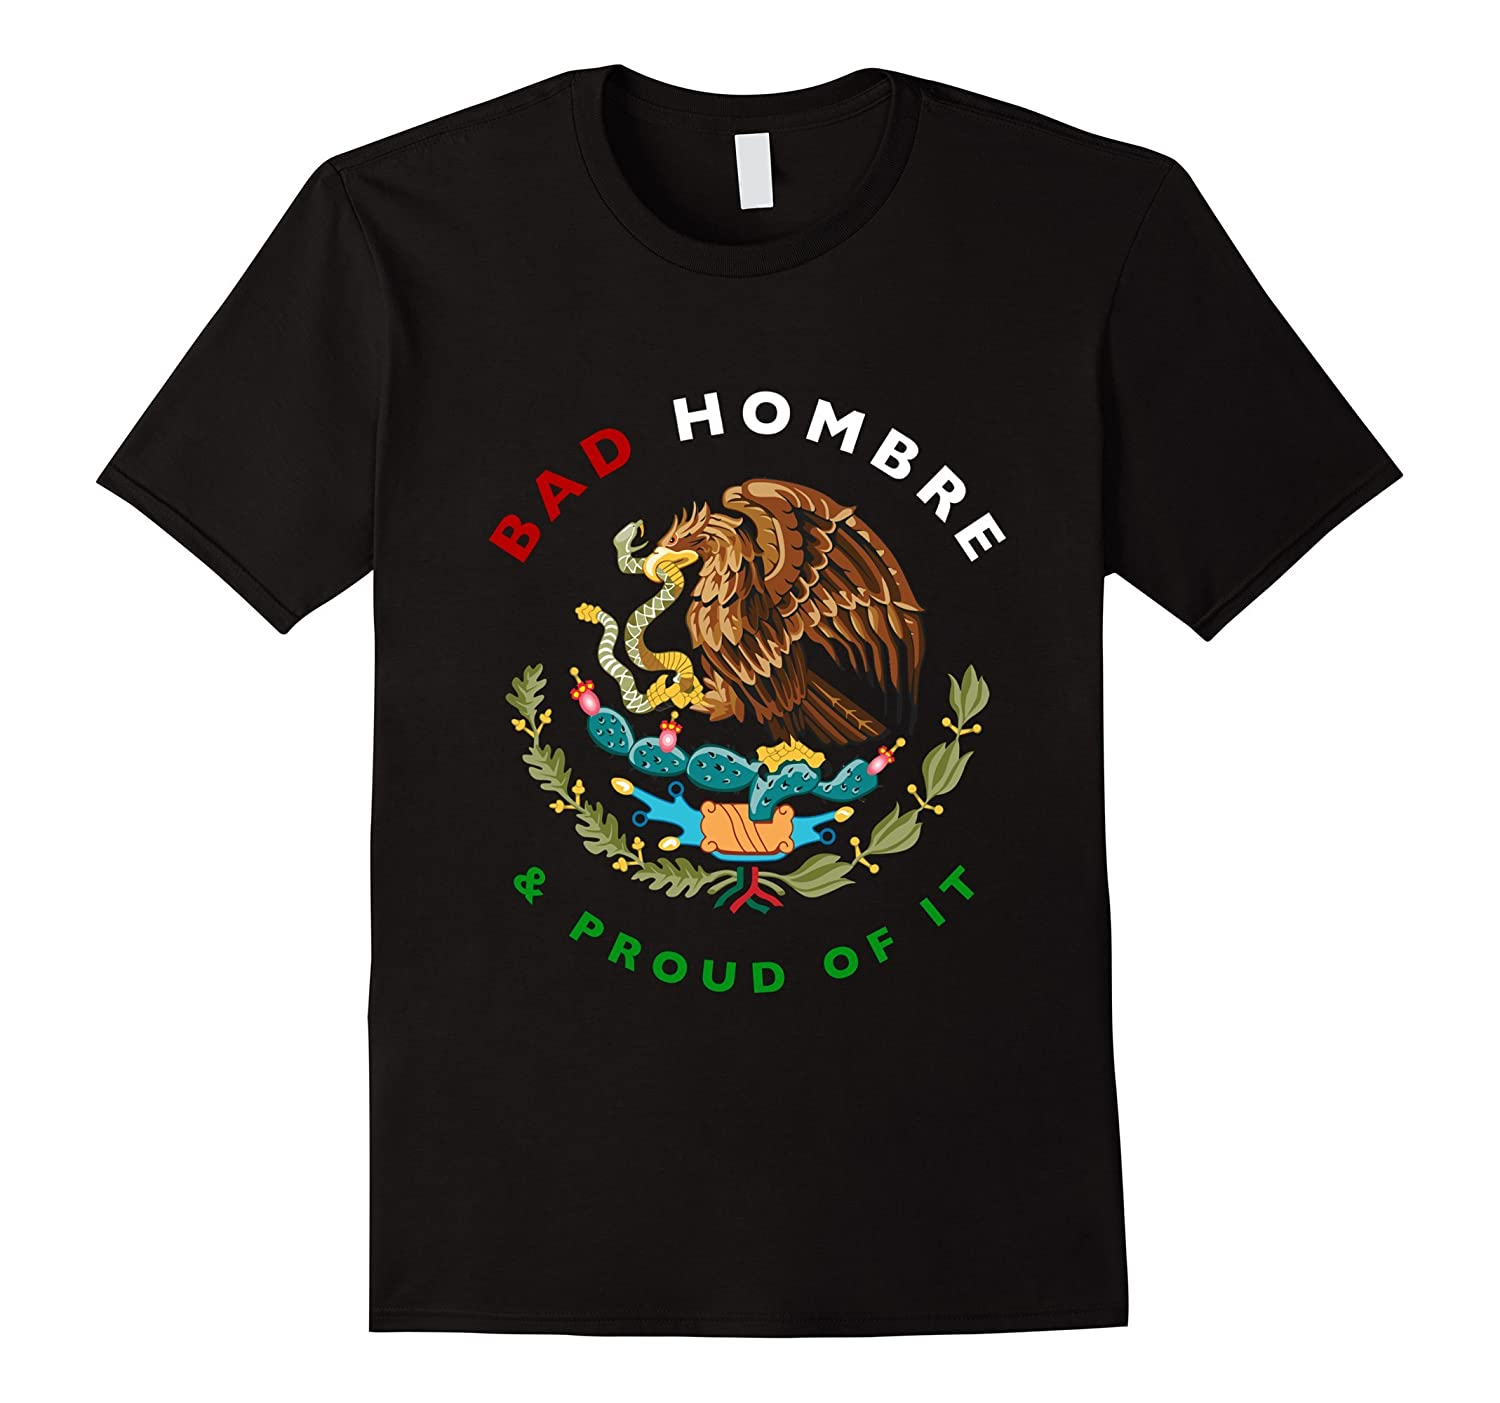 Bad Hombre & Proud Of It-TH